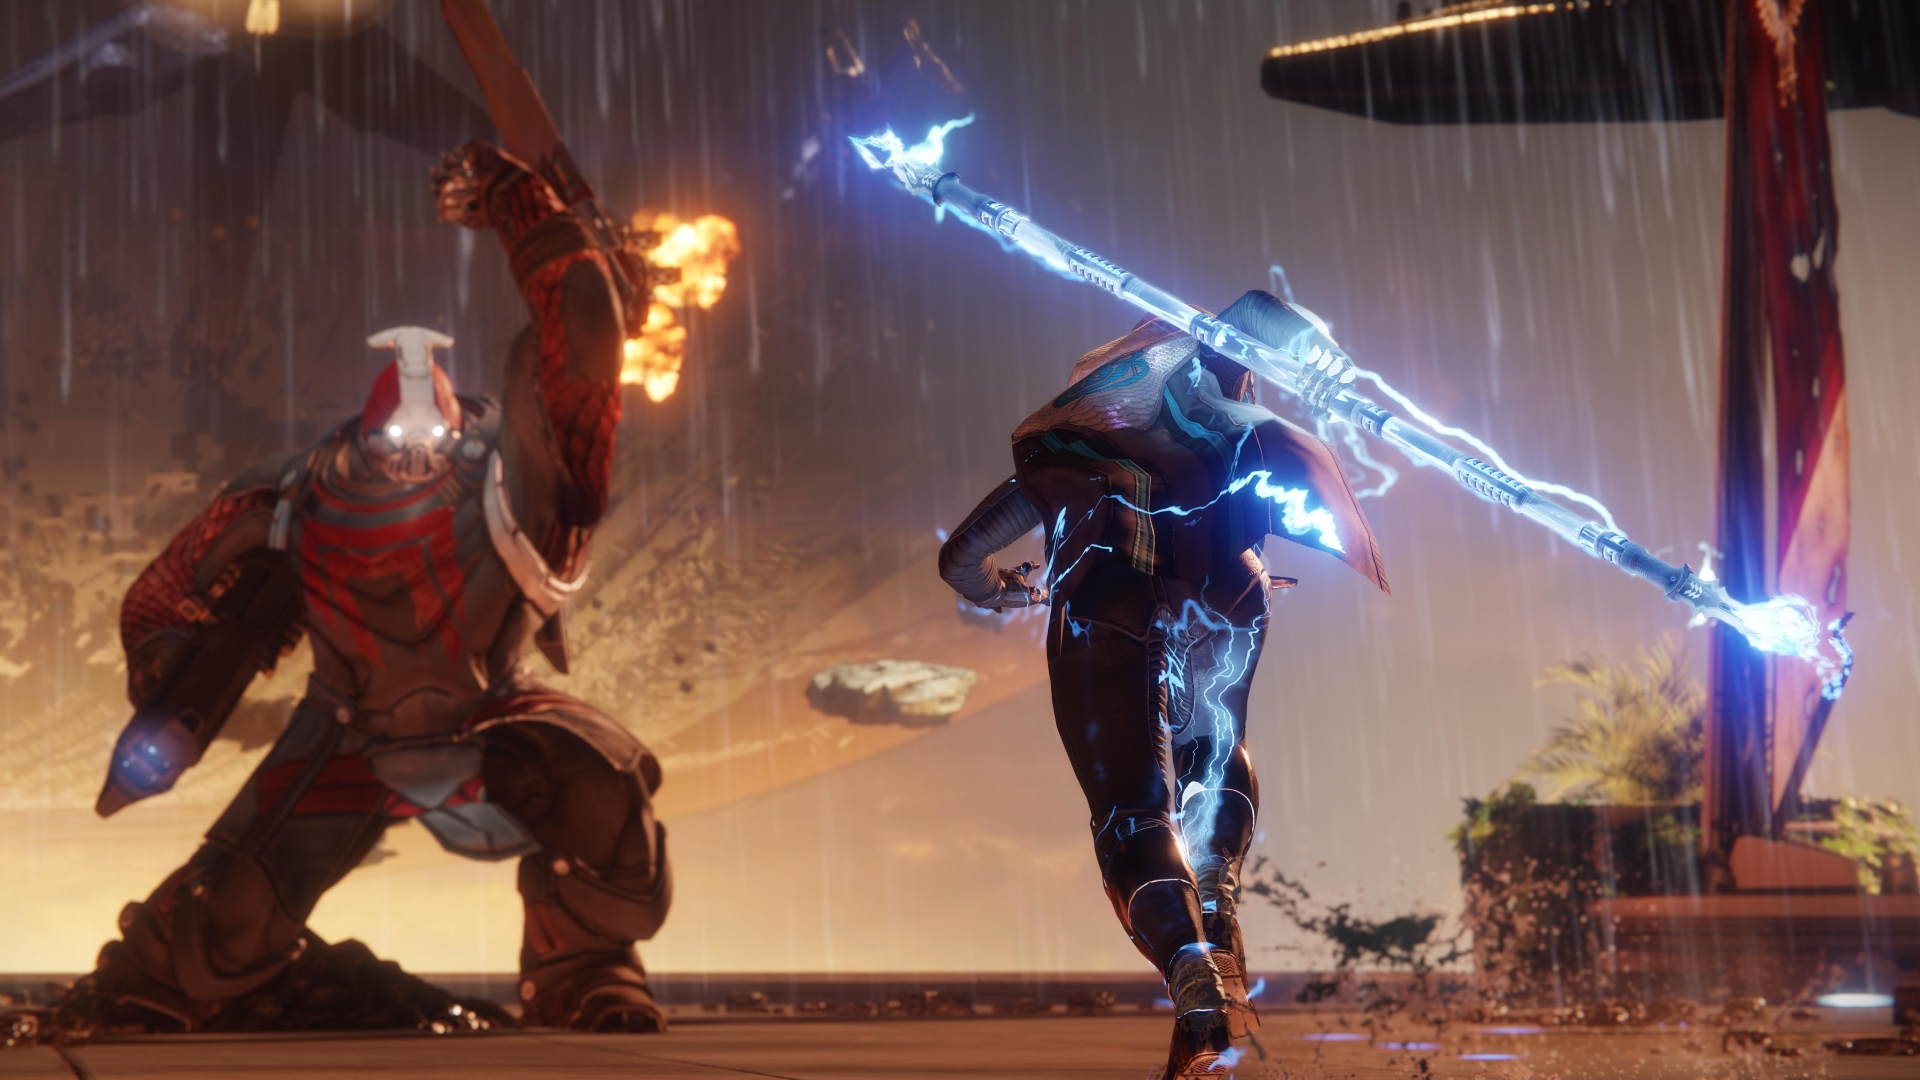 Destiny-2-Campaign-will-be-more-substantial-in-length